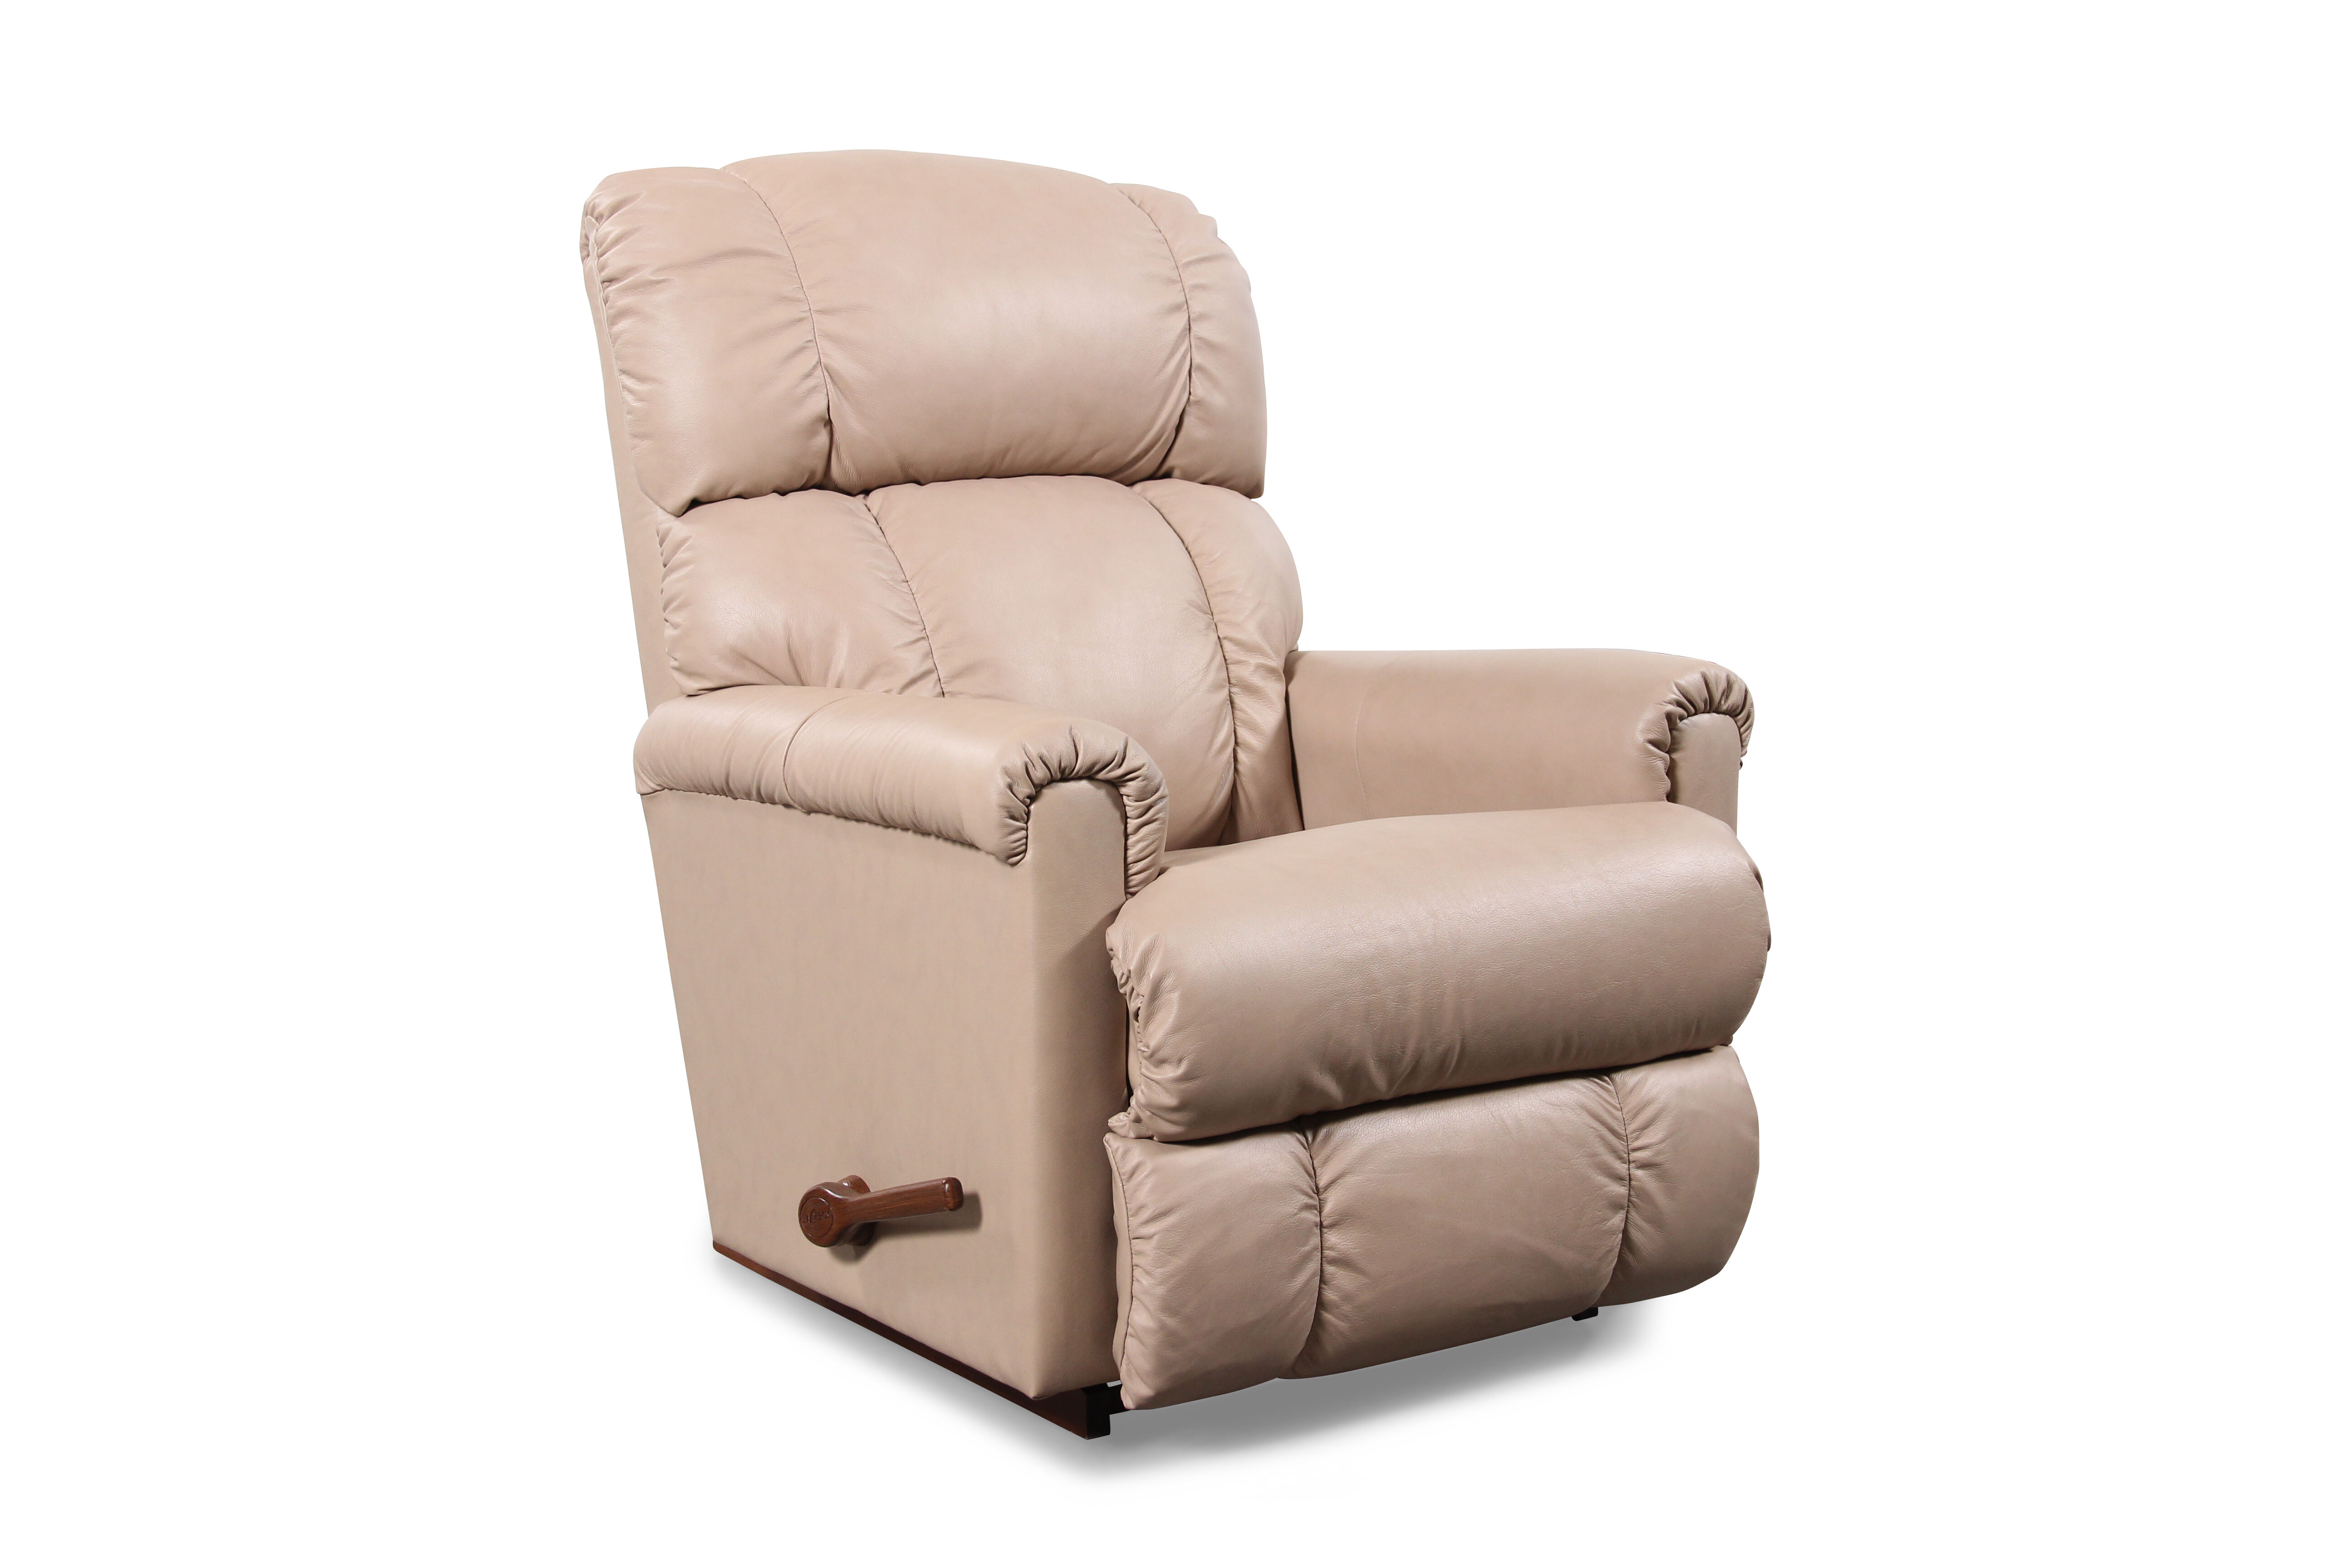 La-Z-Boy Pinnacle Sand Rocker Recliner  sc 1 st  Mathis Brothers & La-Z-Boy Pinnacle Sand Rocker Recliner | Mathis Brothers Furniture islam-shia.org